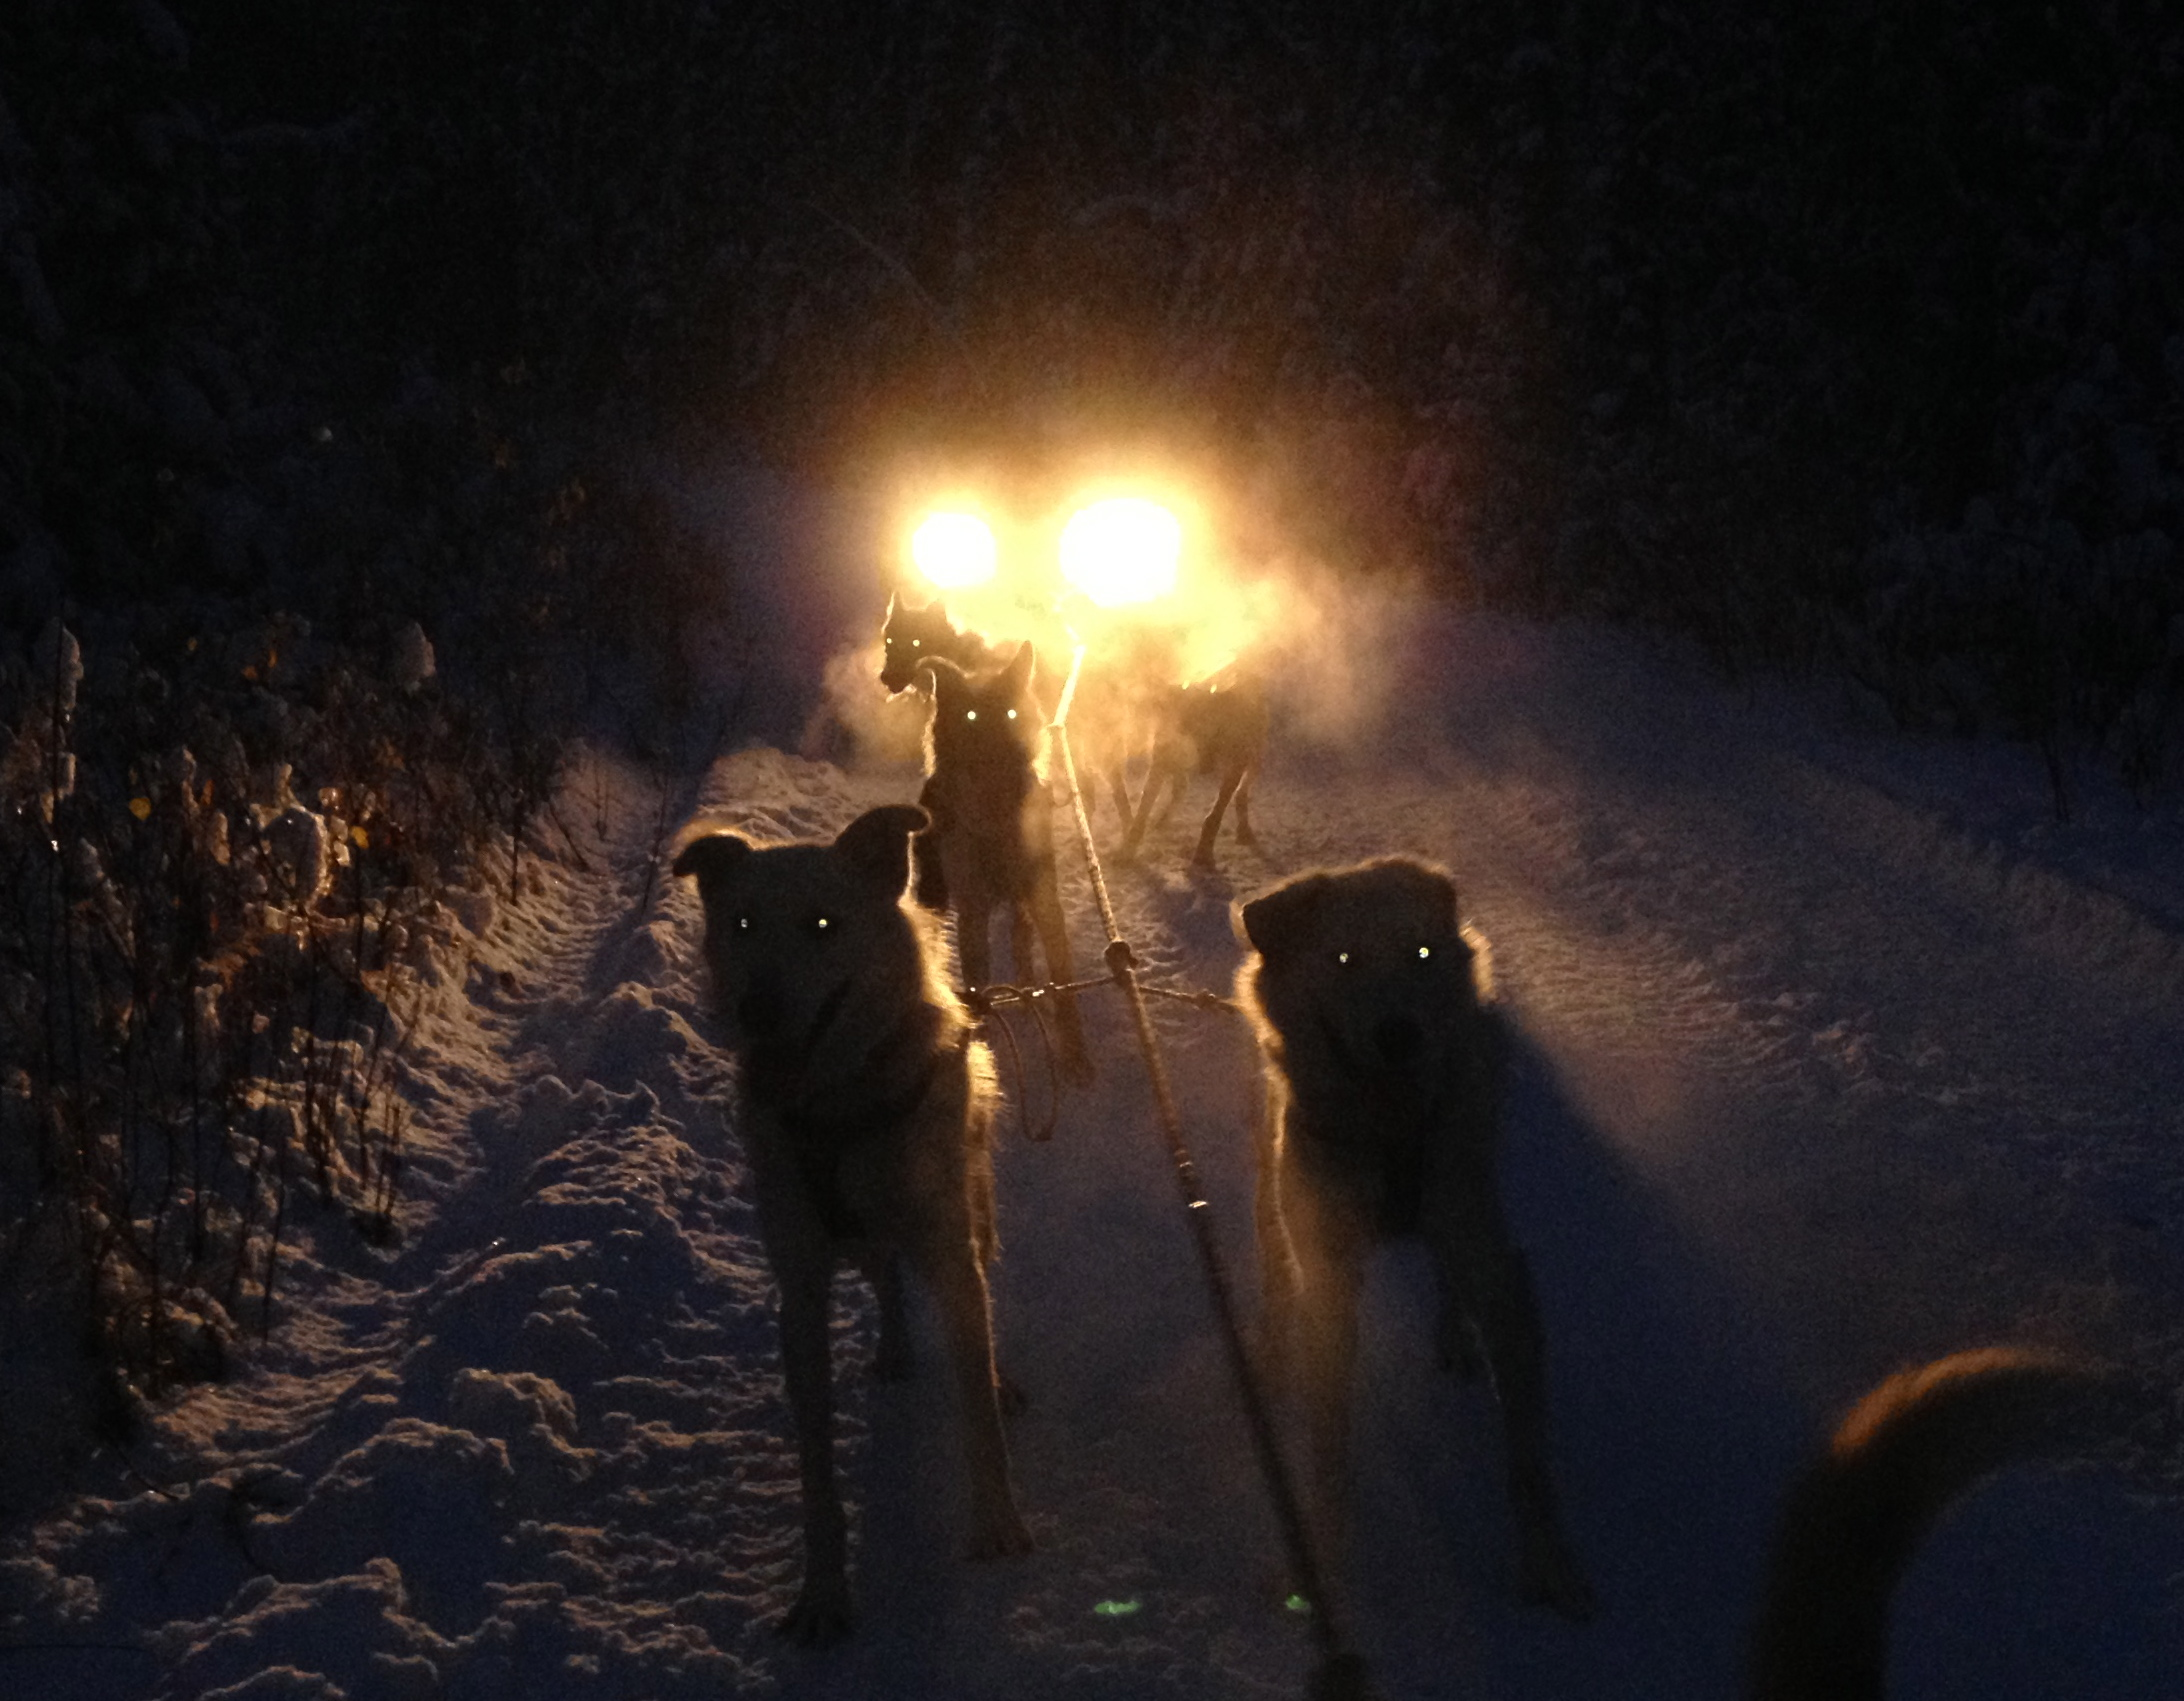 Lefty and Fenton illuminated by the lights of the ATV.